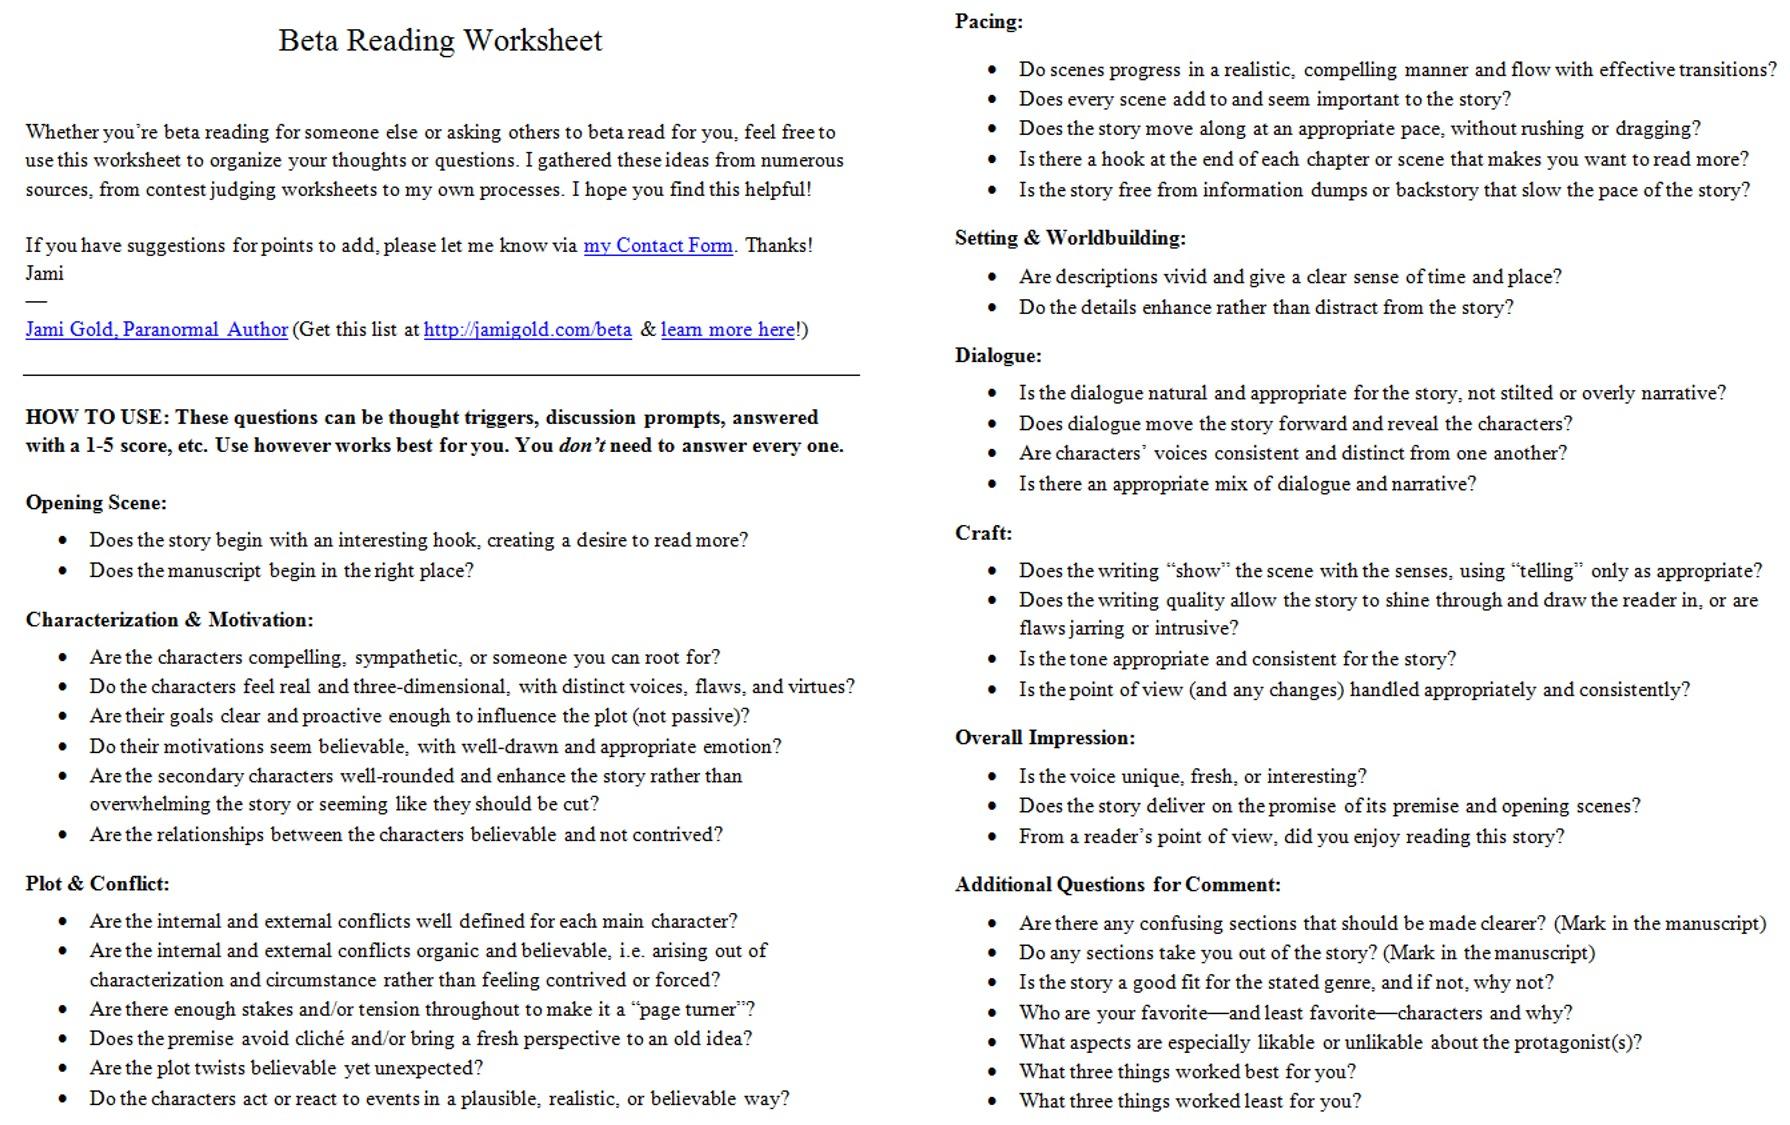 Aldiablosus  Winsome Worksheets For Writers  Jami Gold Paranormal Author With Engaging Screen Shot Of The Twopage Beta Reading Worksheet With Charming Number Match Worksheets Also Cell Structures Worksheet In Addition Preschool Sorting Worksheets And Comprehension Worksheets St Grade As Well As Free Printable Alphabetical Order Worksheets Additionally Vba Print Worksheet From Jamigoldcom With Aldiablosus  Engaging Worksheets For Writers  Jami Gold Paranormal Author With Charming Screen Shot Of The Twopage Beta Reading Worksheet And Winsome Number Match Worksheets Also Cell Structures Worksheet In Addition Preschool Sorting Worksheets From Jamigoldcom